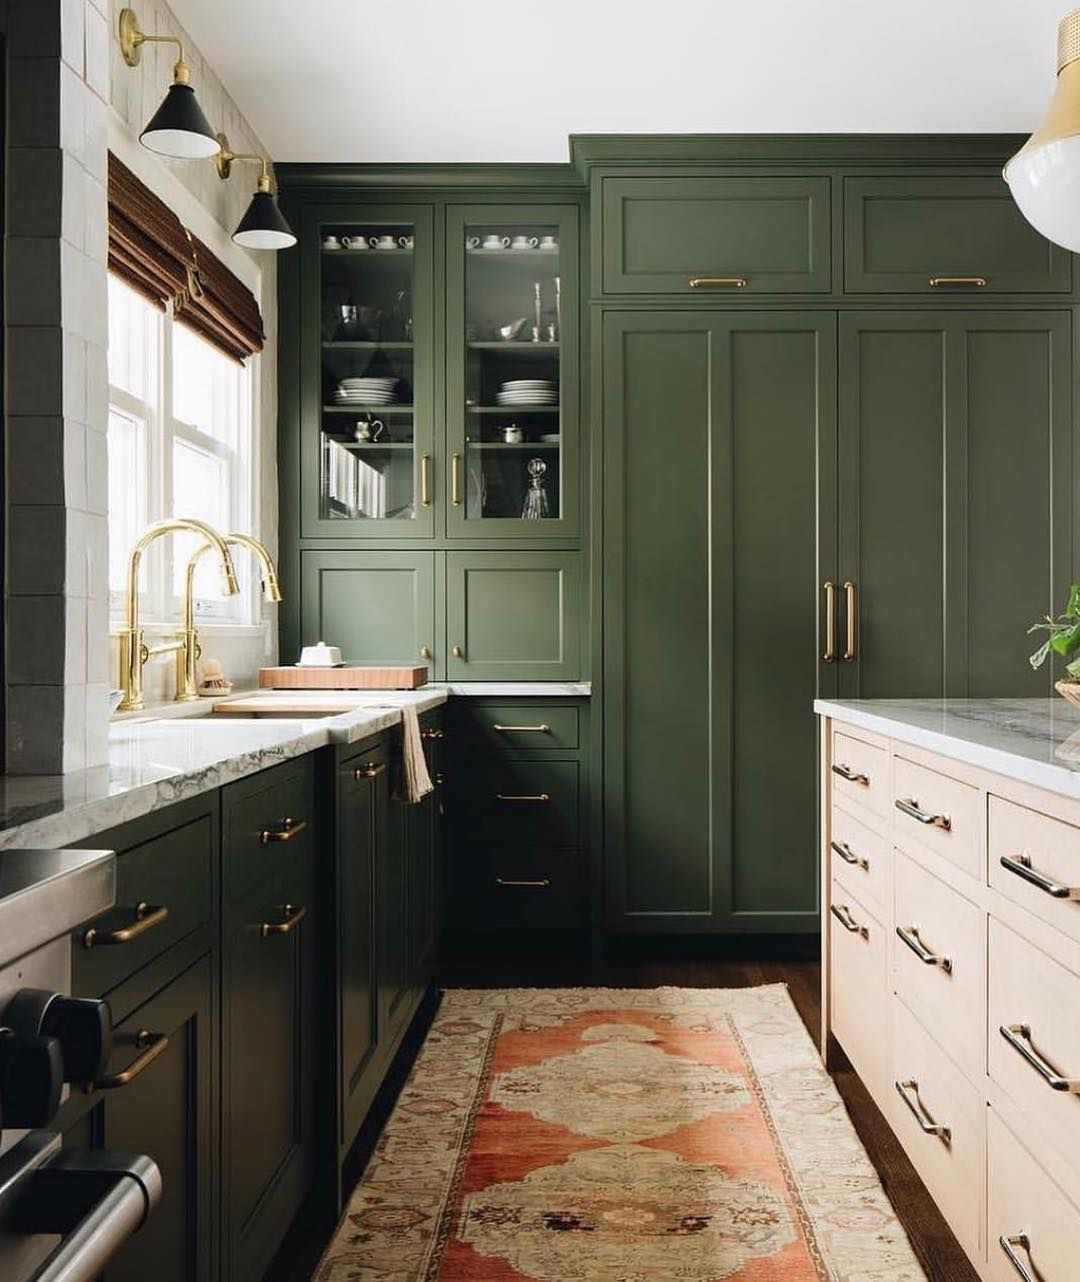 Decorist On Instagram This Olive Green And Brass Kitchen Has Us Swooning Jeanstofferdesign Green Kitchen Cabinets Kitchen Plans Green Cabinets